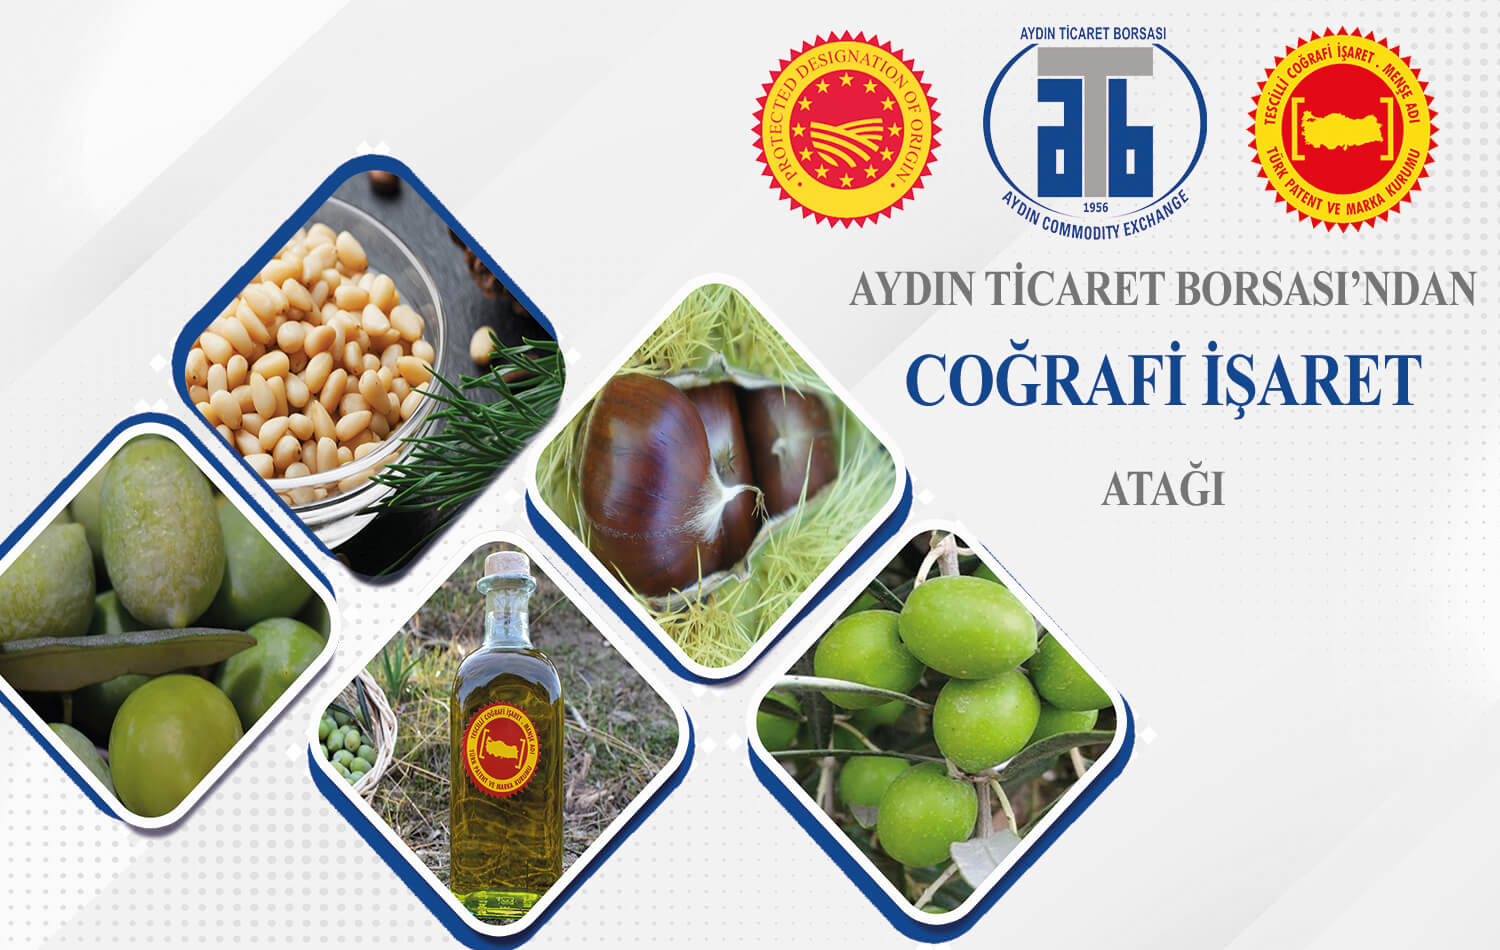 MAY 7,2021- Registration Advancement Of Geographical Indication Is Going On In Aydın Commodity Exchange